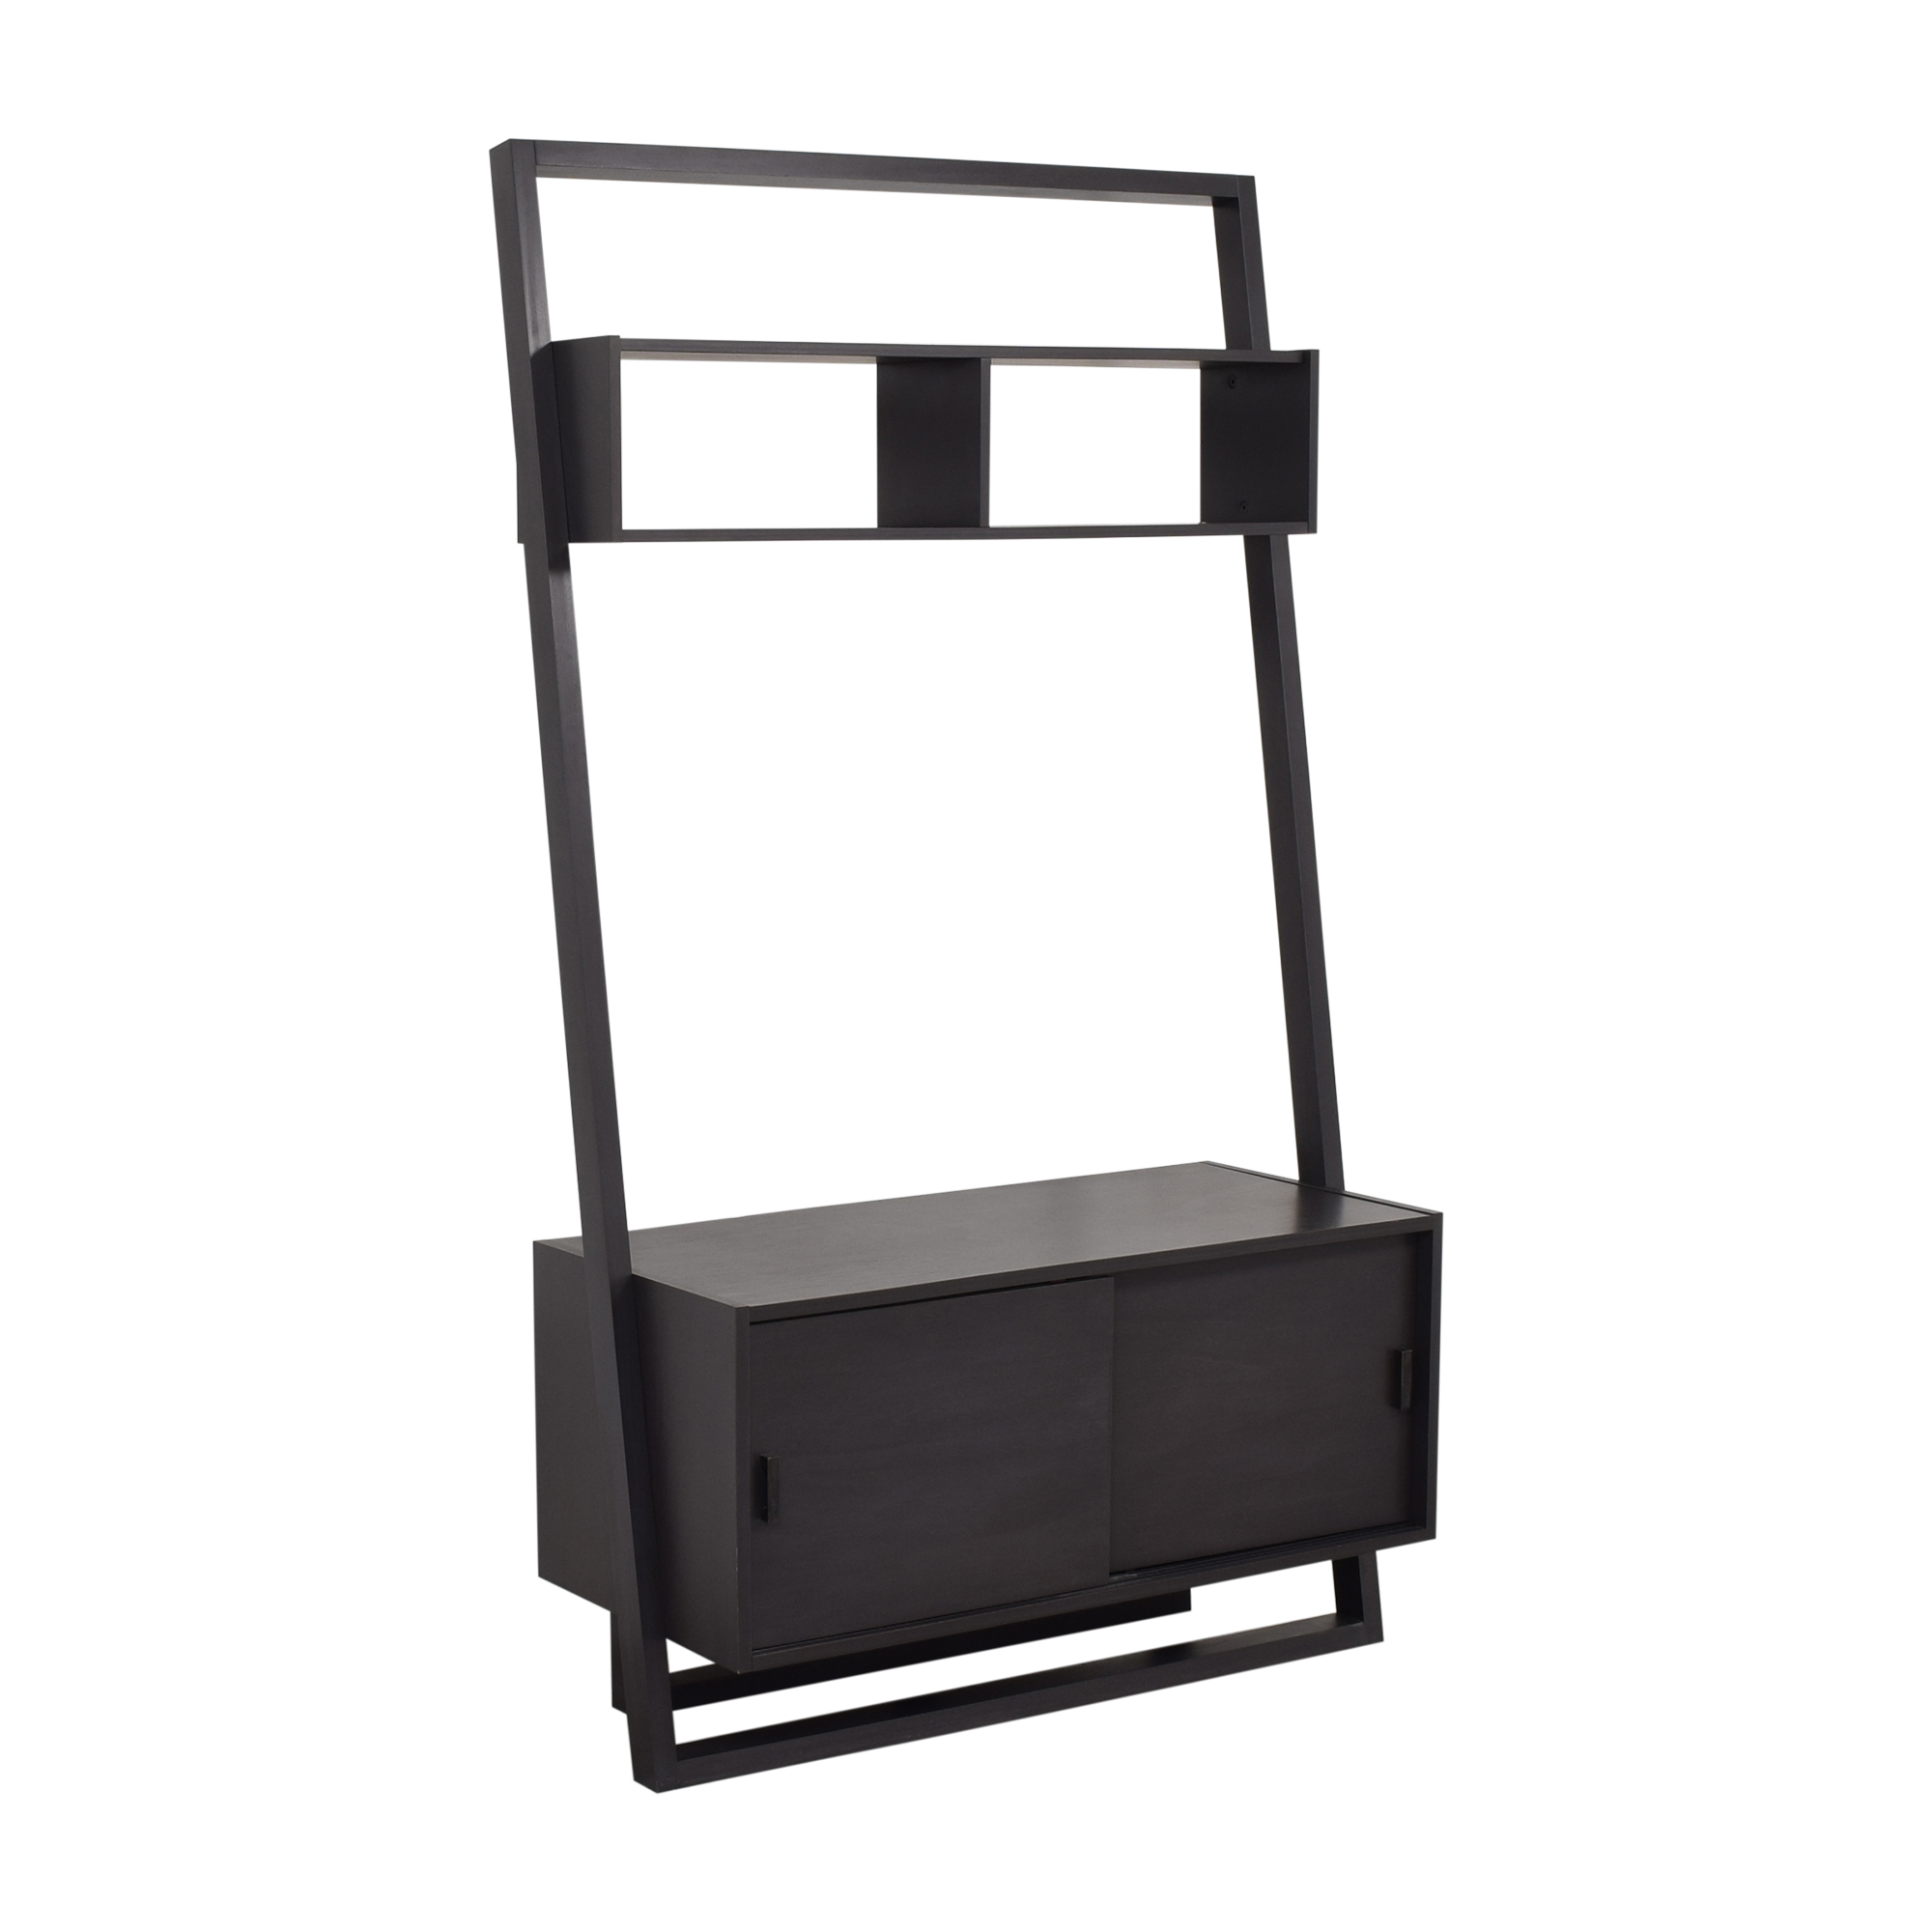 Crate & Barrel Sloane Leaning Media Stand Crate & Barrel